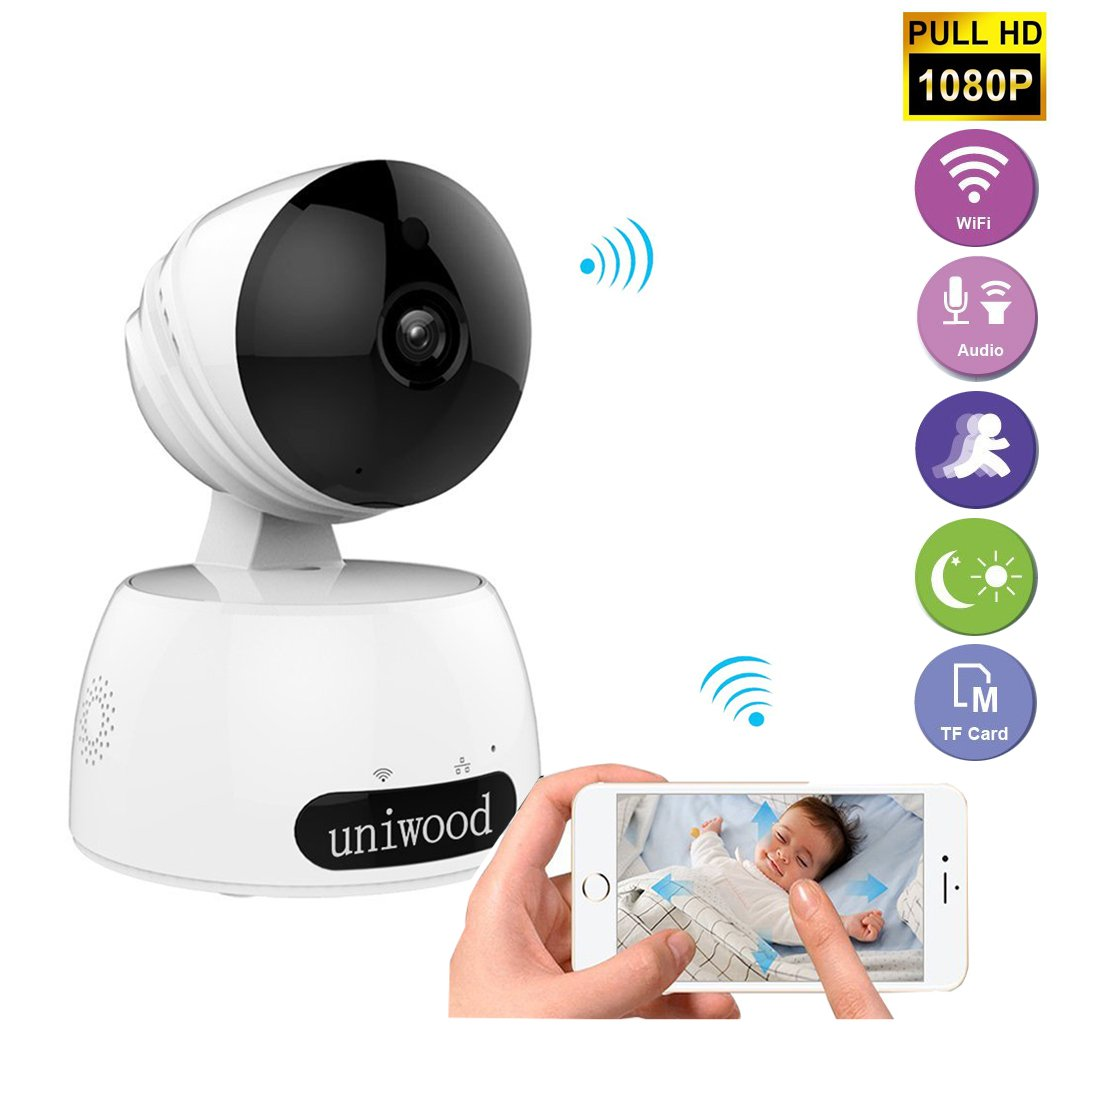 uniwood 1080P HD WiFi Security Camera, Wireless IP Surveillance Pet Camera with Two Way Audio, Motion Detection Baby Monitor with Camera, Remote Recorder Viewer by Smartphone App for iOS and Android